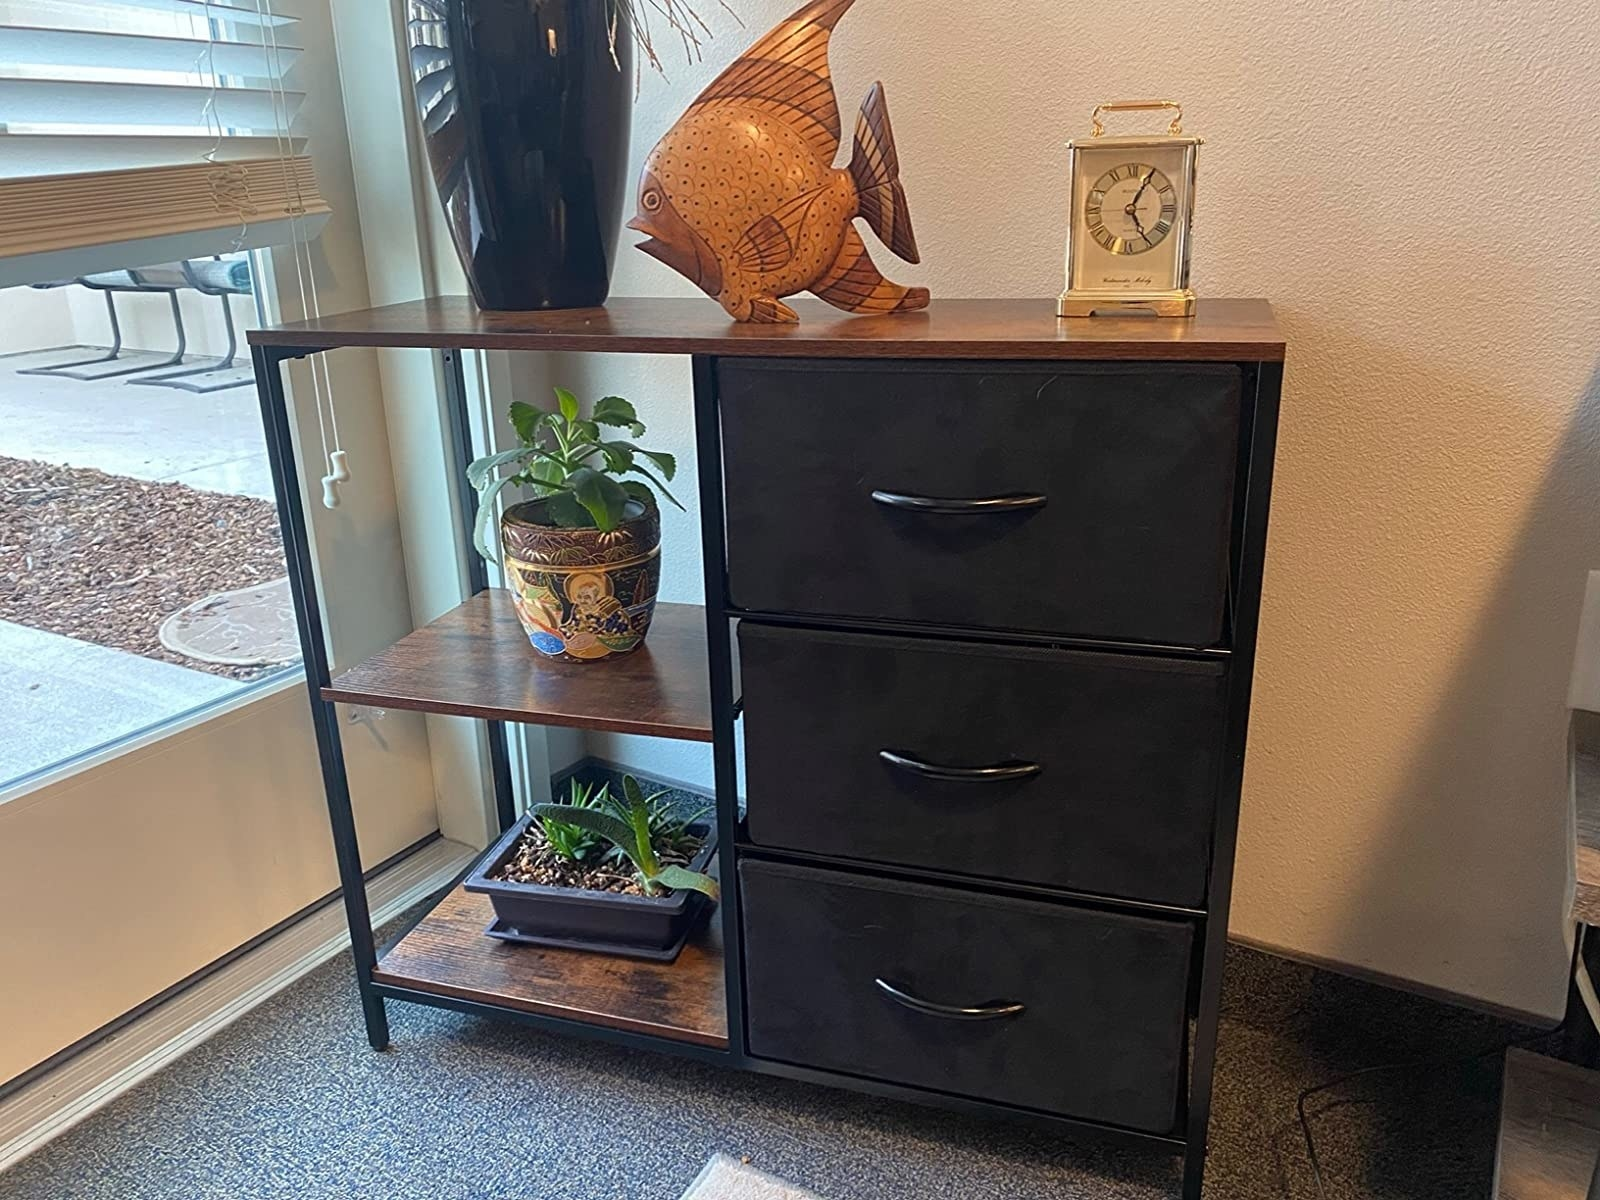 reviewer image of the rustic brown kamiler storage dresser with plants on the bottom two tiers and a vase on the top surface